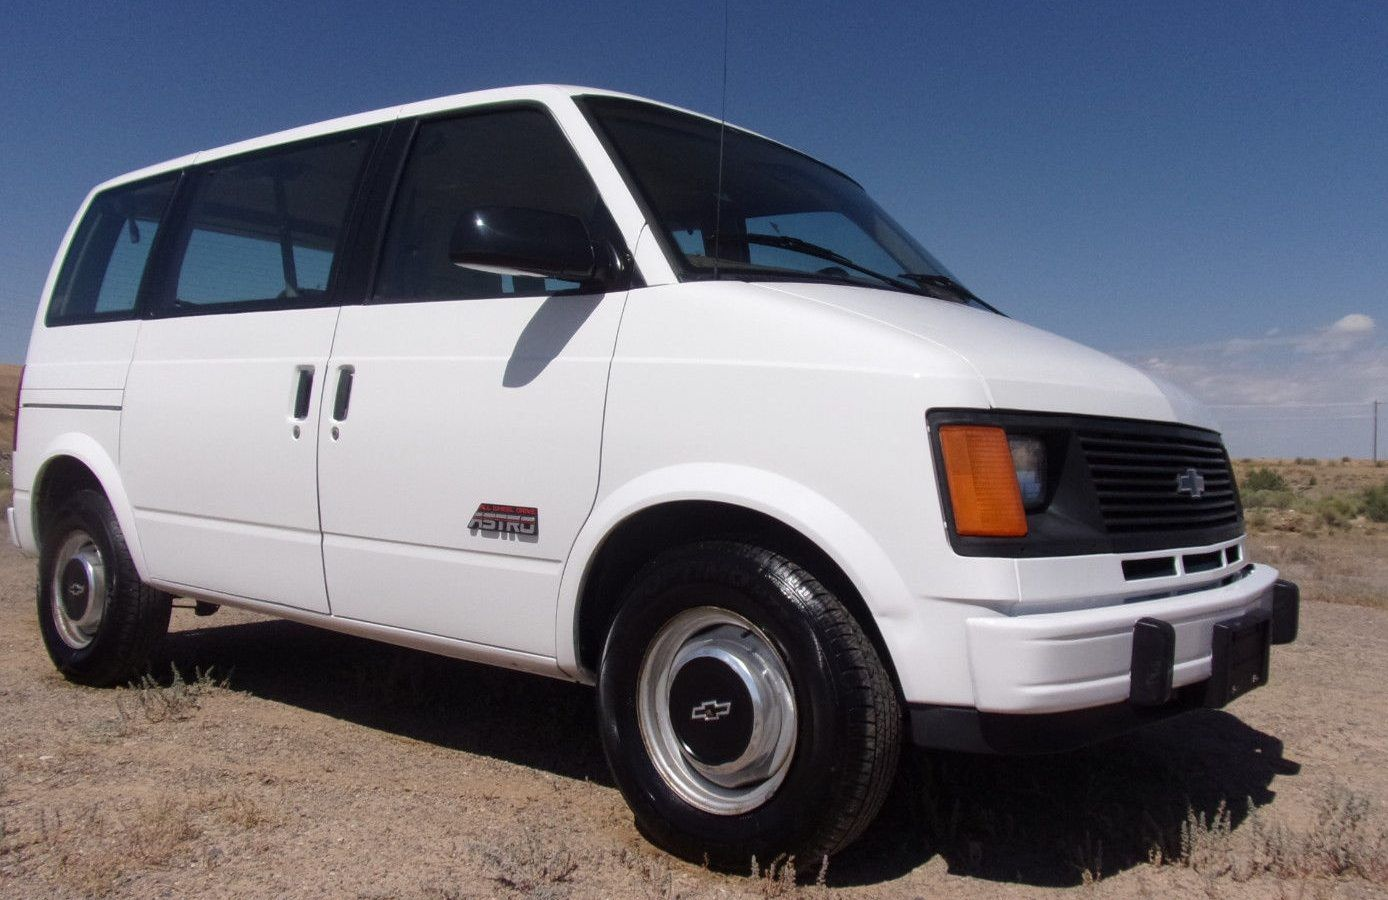 Never This Nice: 1993 Chevy Astro AWD   Barn Finds   Chevy astro van